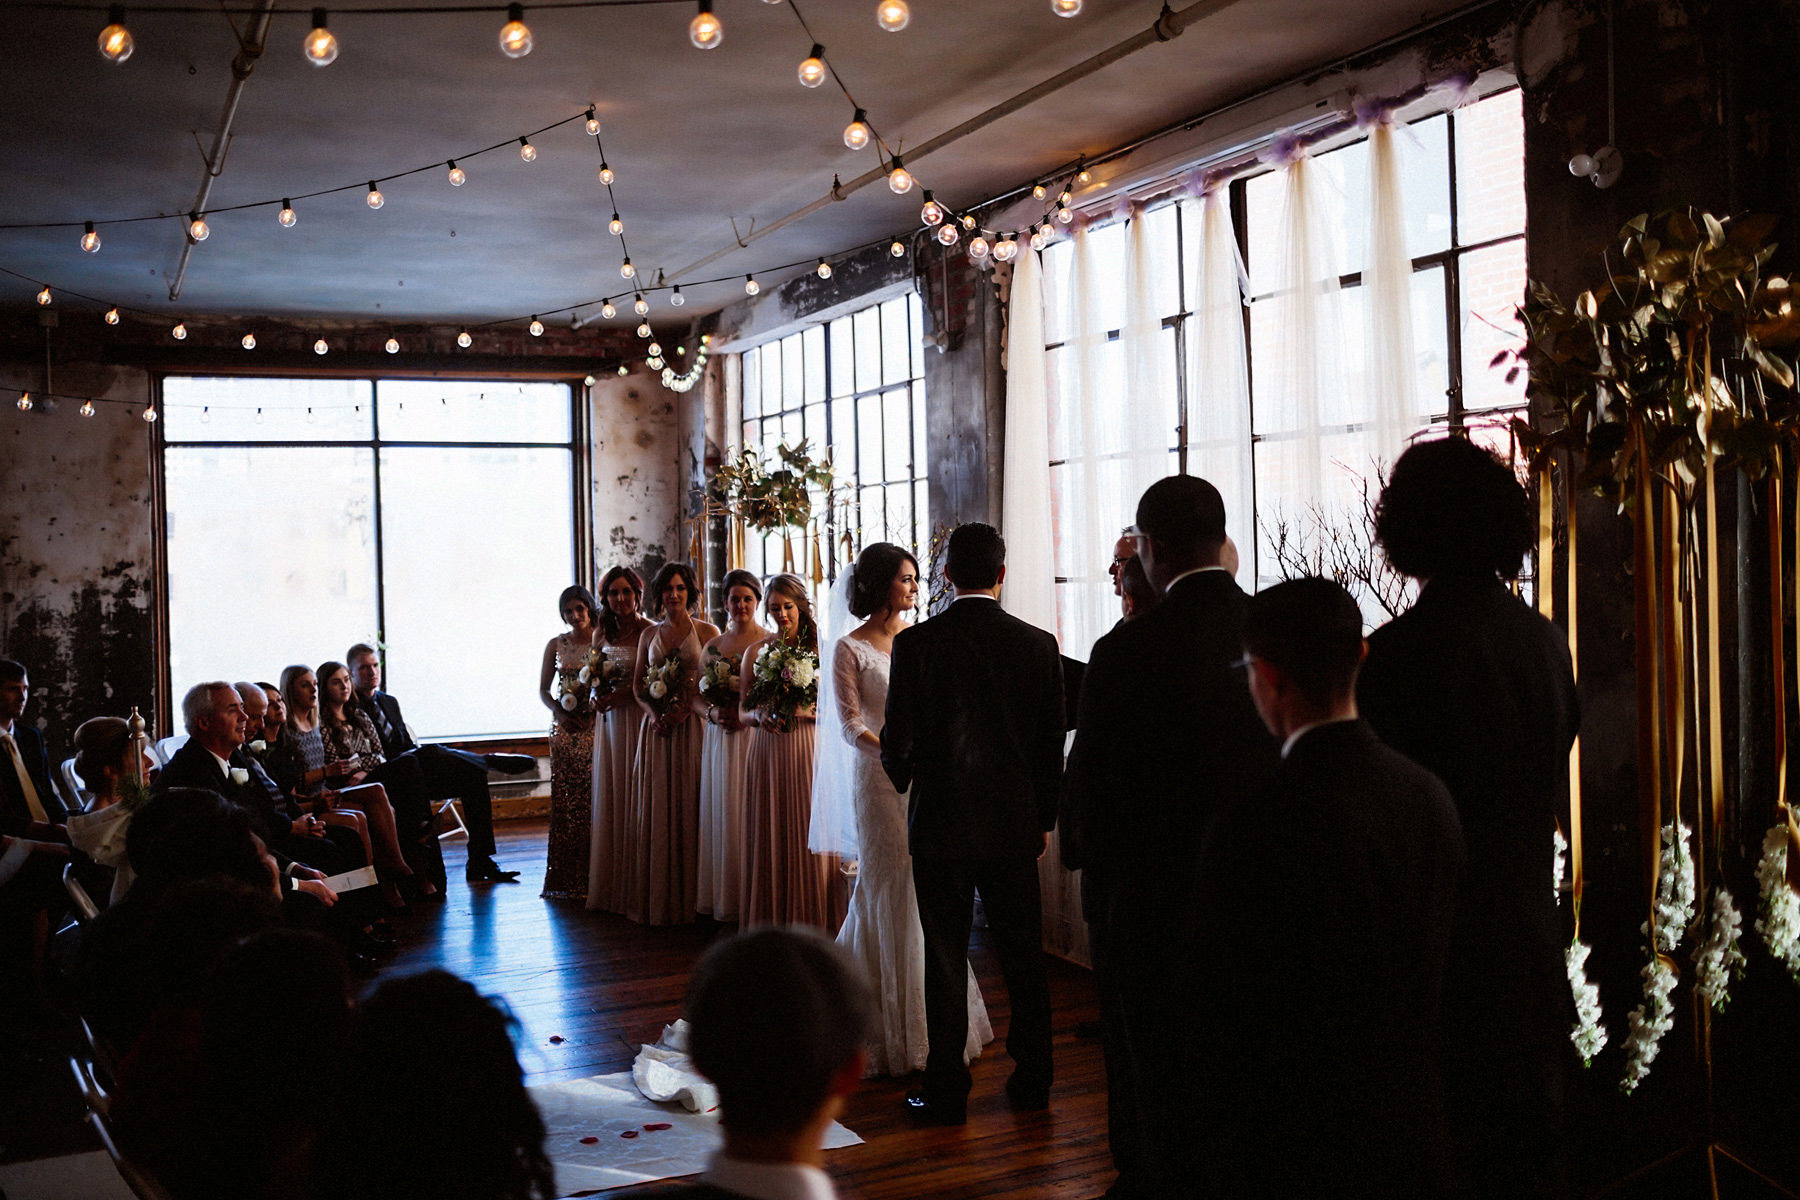 25_The Bauer Winter Wedding Kansas City, Missouri_Kindling Wedding Photography.JPG